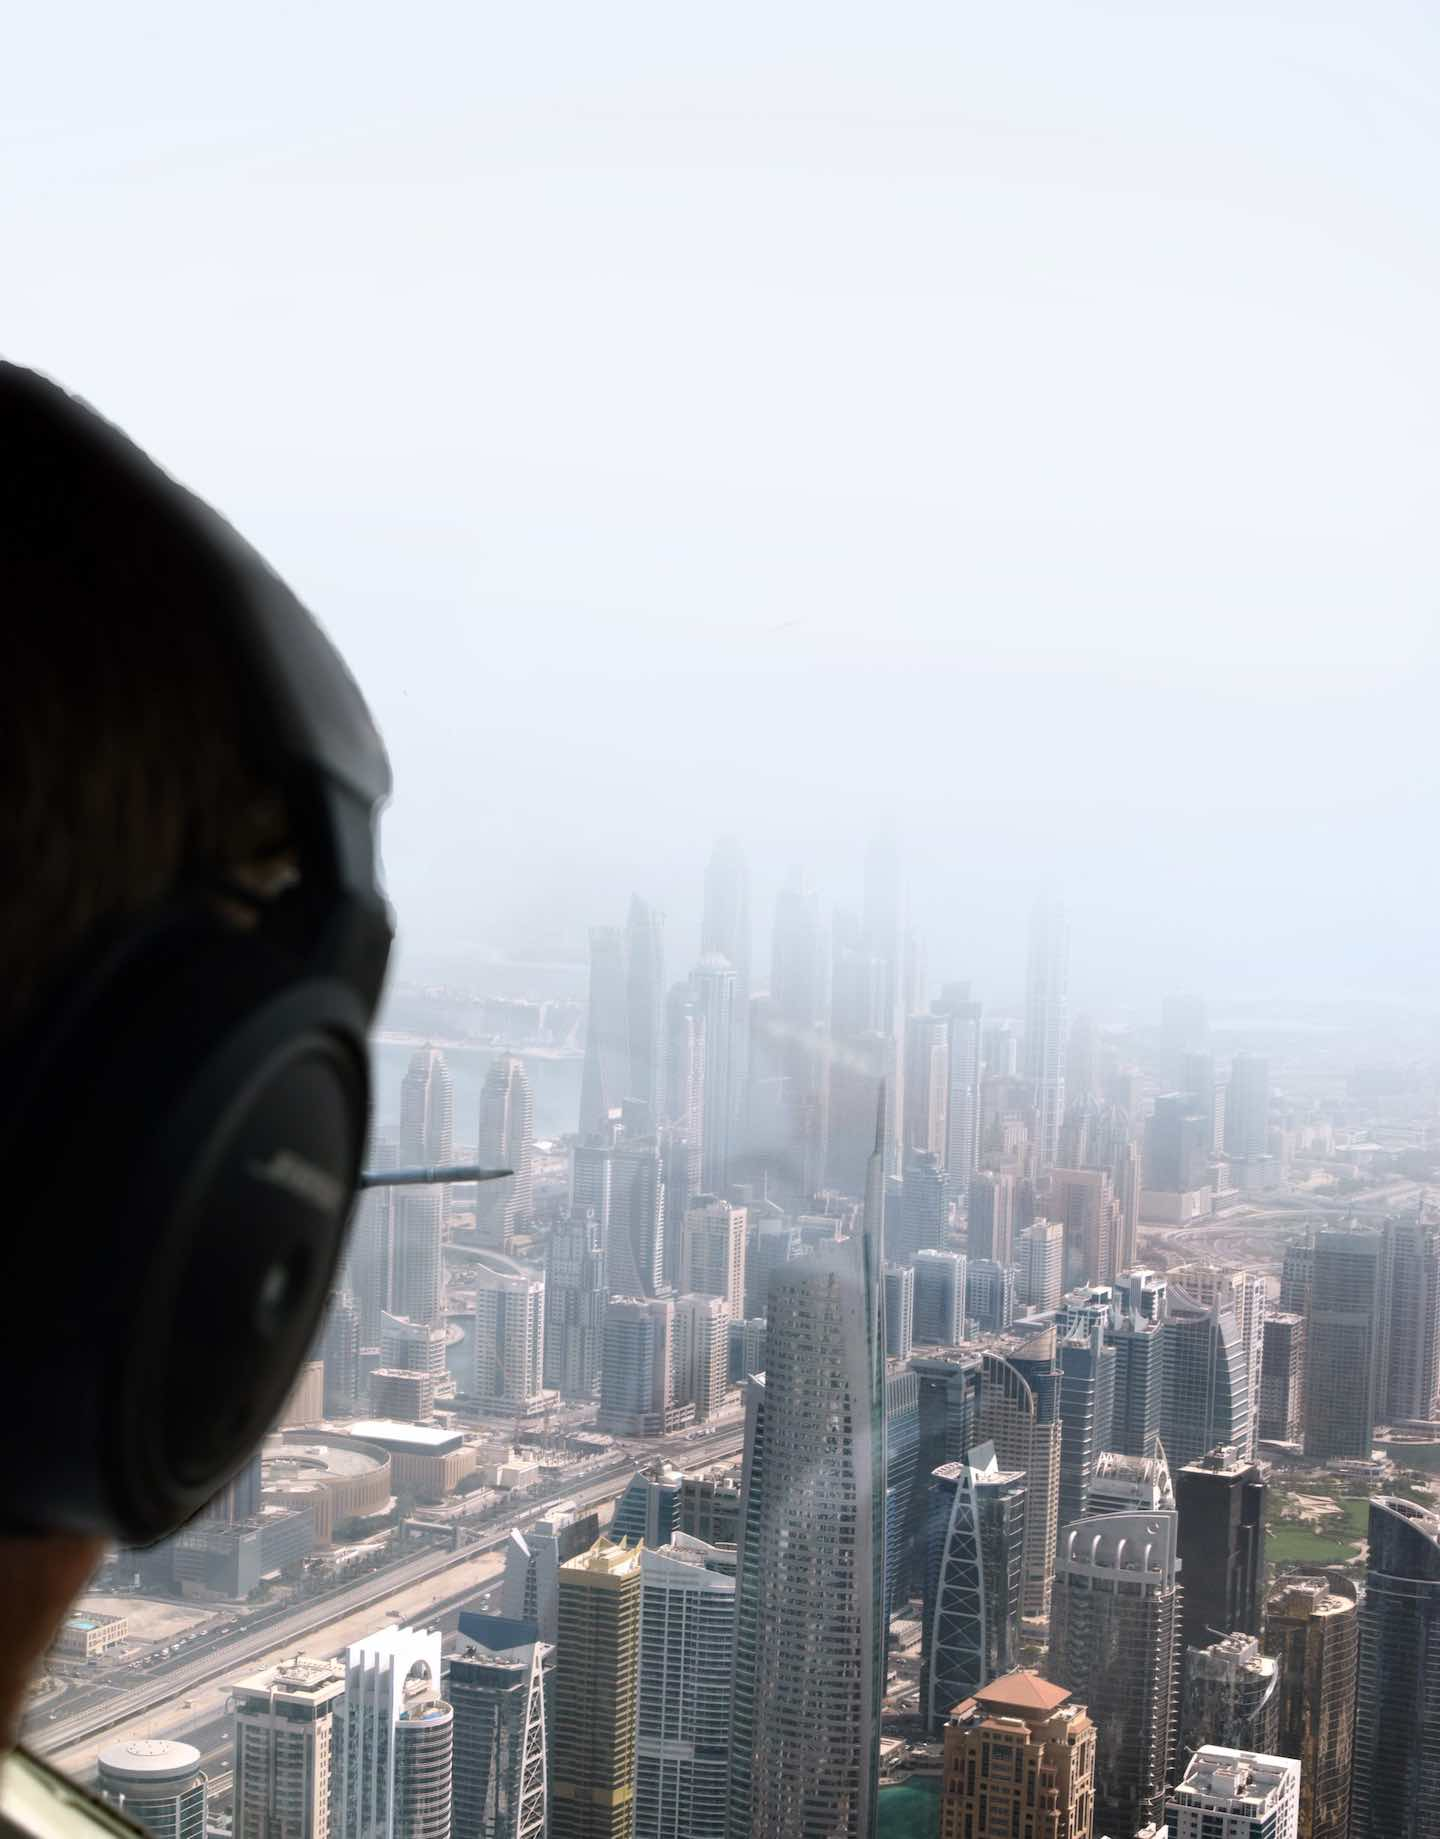 View out the pilot's side | Image © ExpatAlli.com